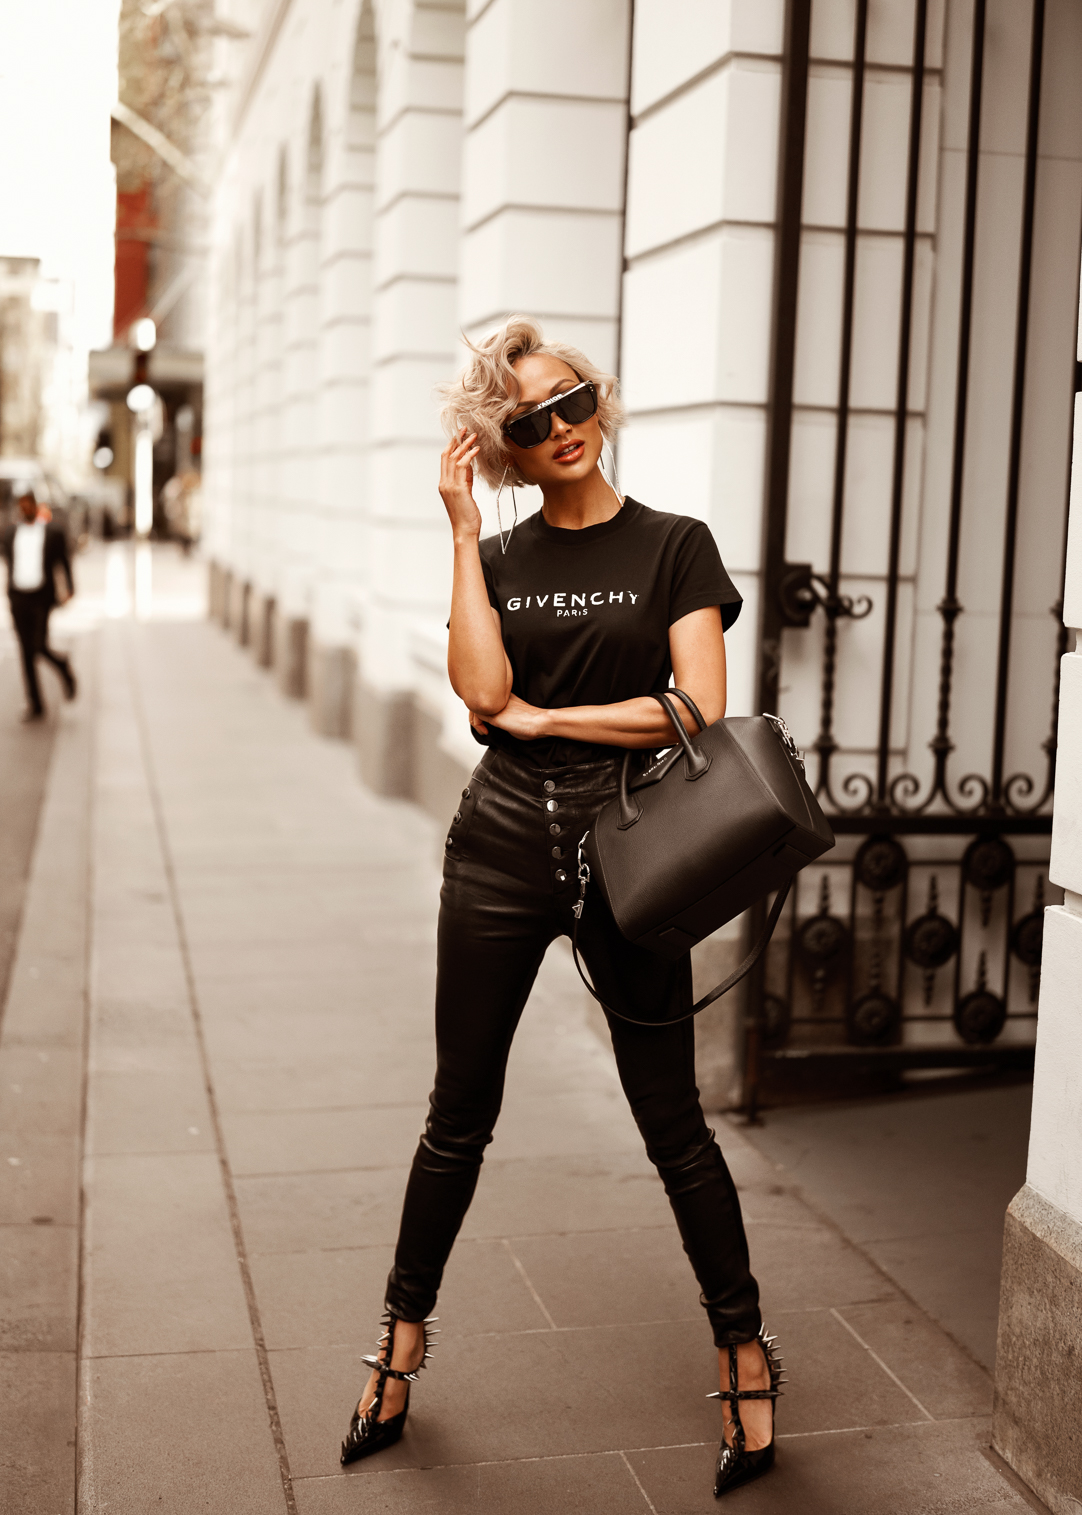 Micah-Gianneli-Australian-Melbourne-Fashion-Blogger-Influencer-Photography-Street-Style-Vogue-Editorial-Luisaviaroma-Givenchy-Antigona-Balenciaga-Dior-Luxury